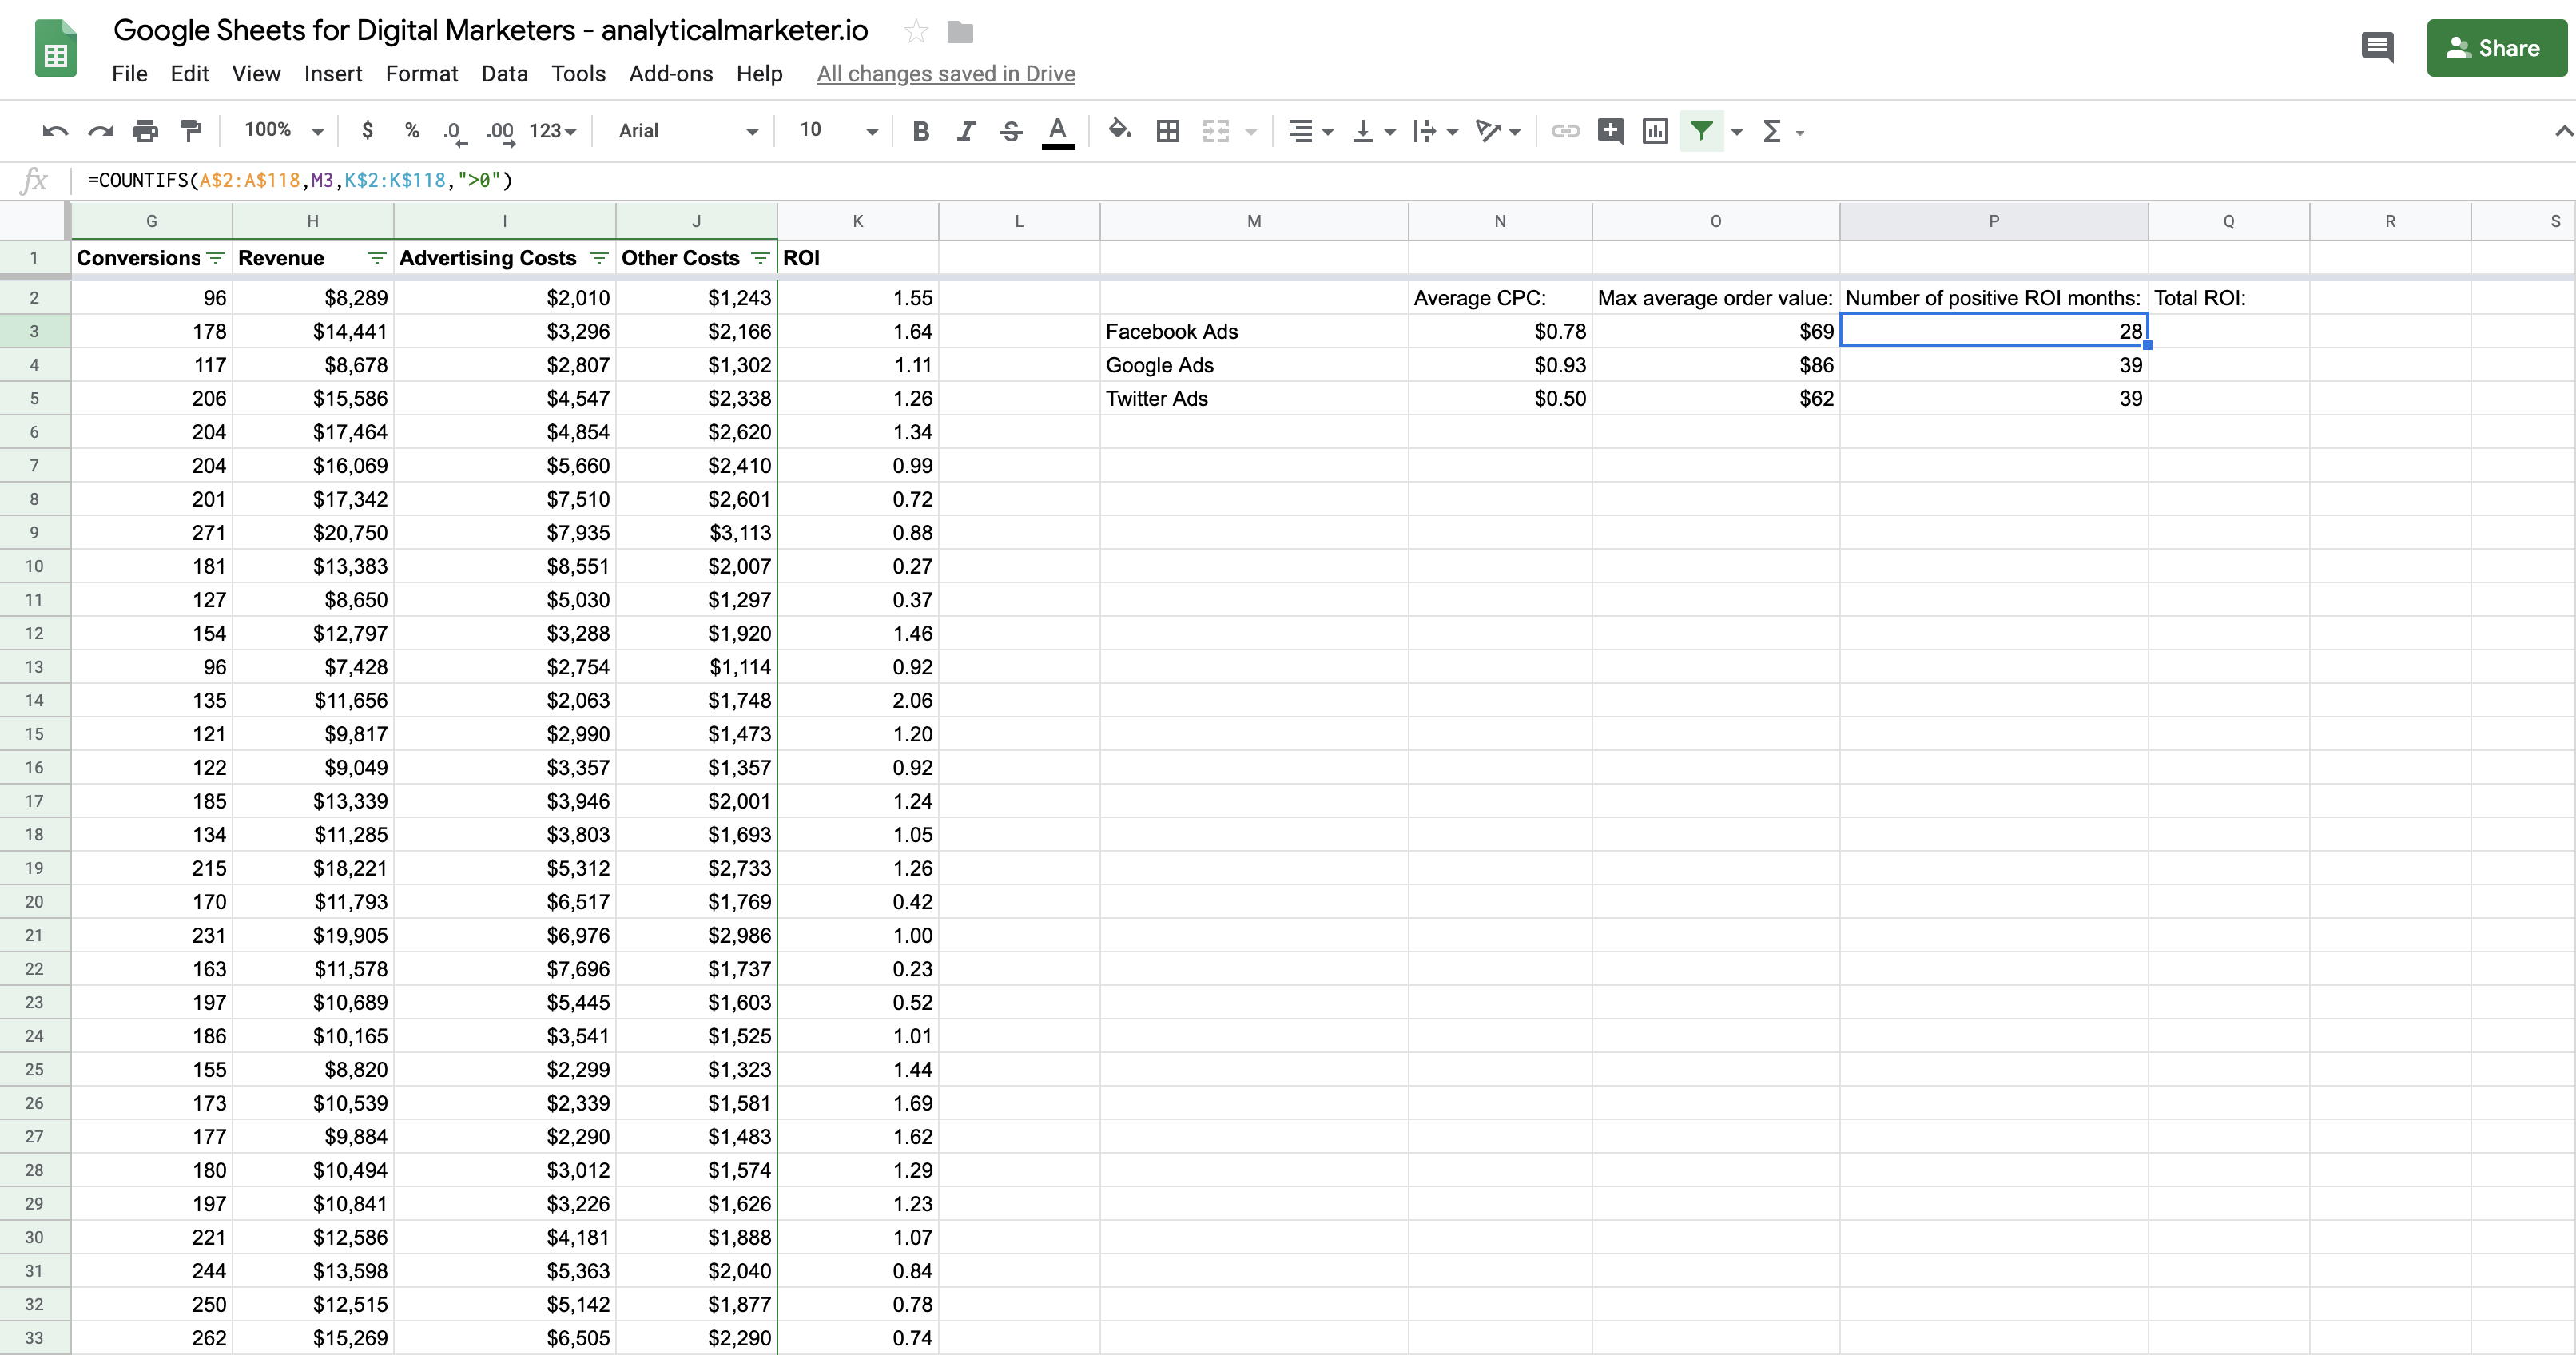 Google Sheets formulas for marketing - COUNTIFS